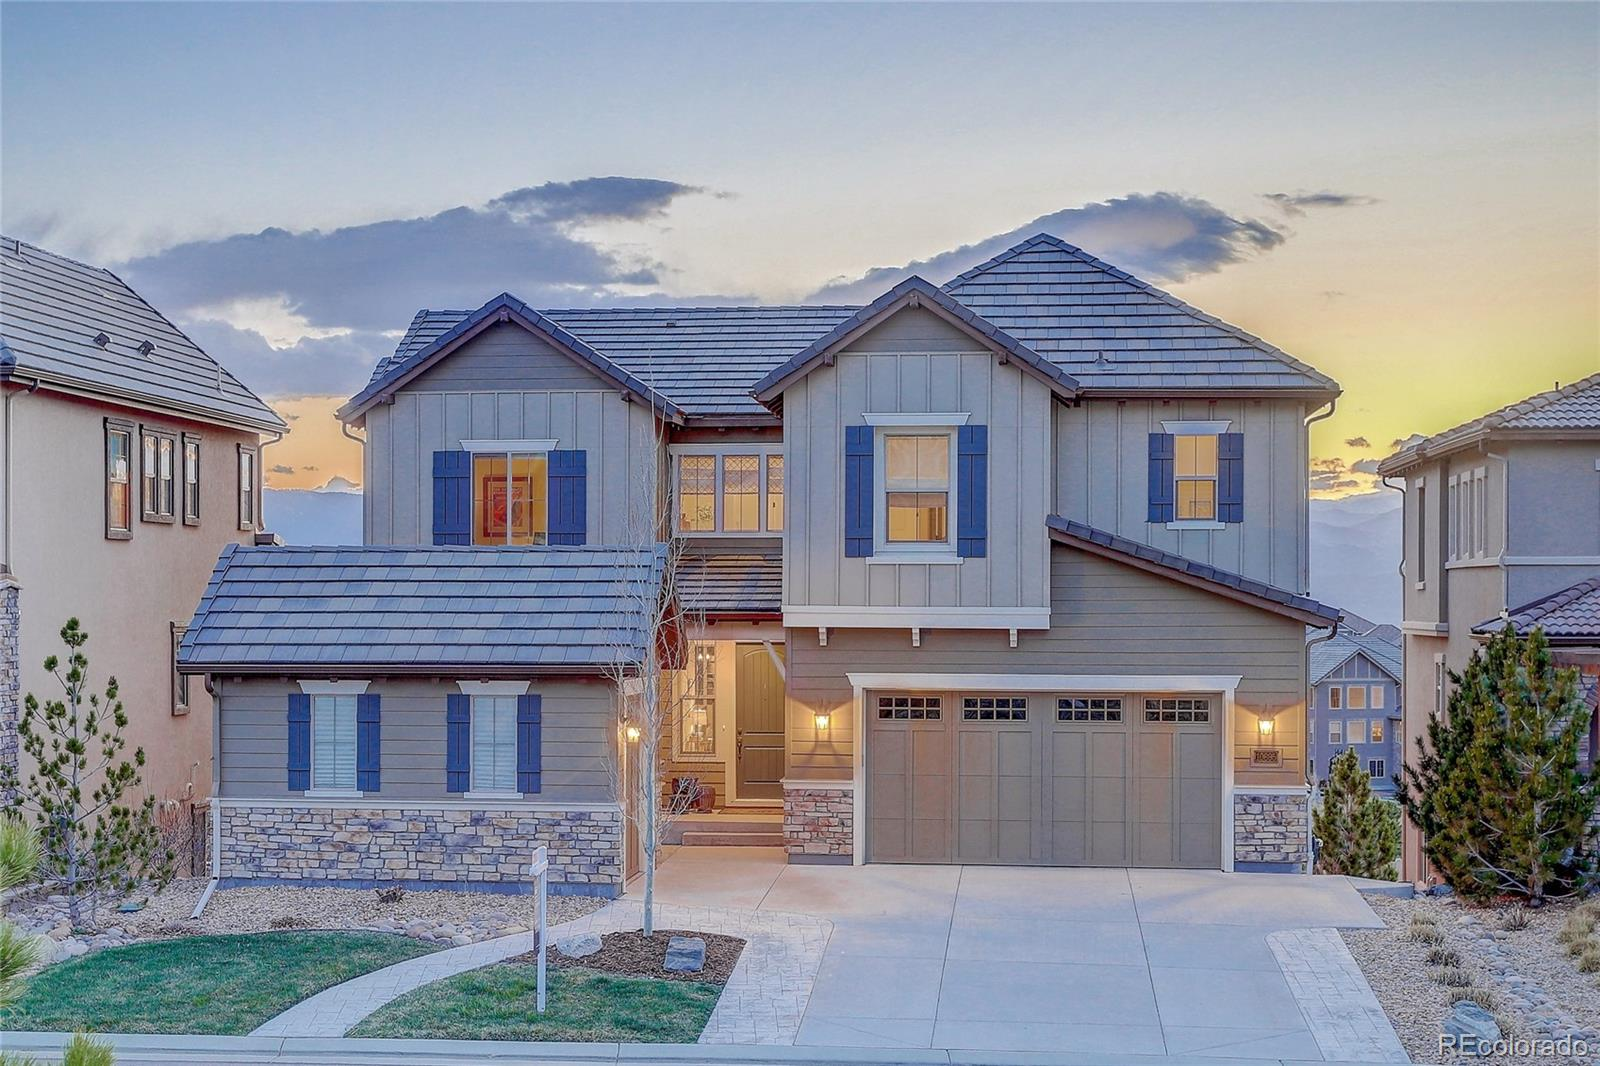 10695 Timberdash Avenue, Highlands Ranch, CO 80126 - Highlands Ranch, CO real estate listing